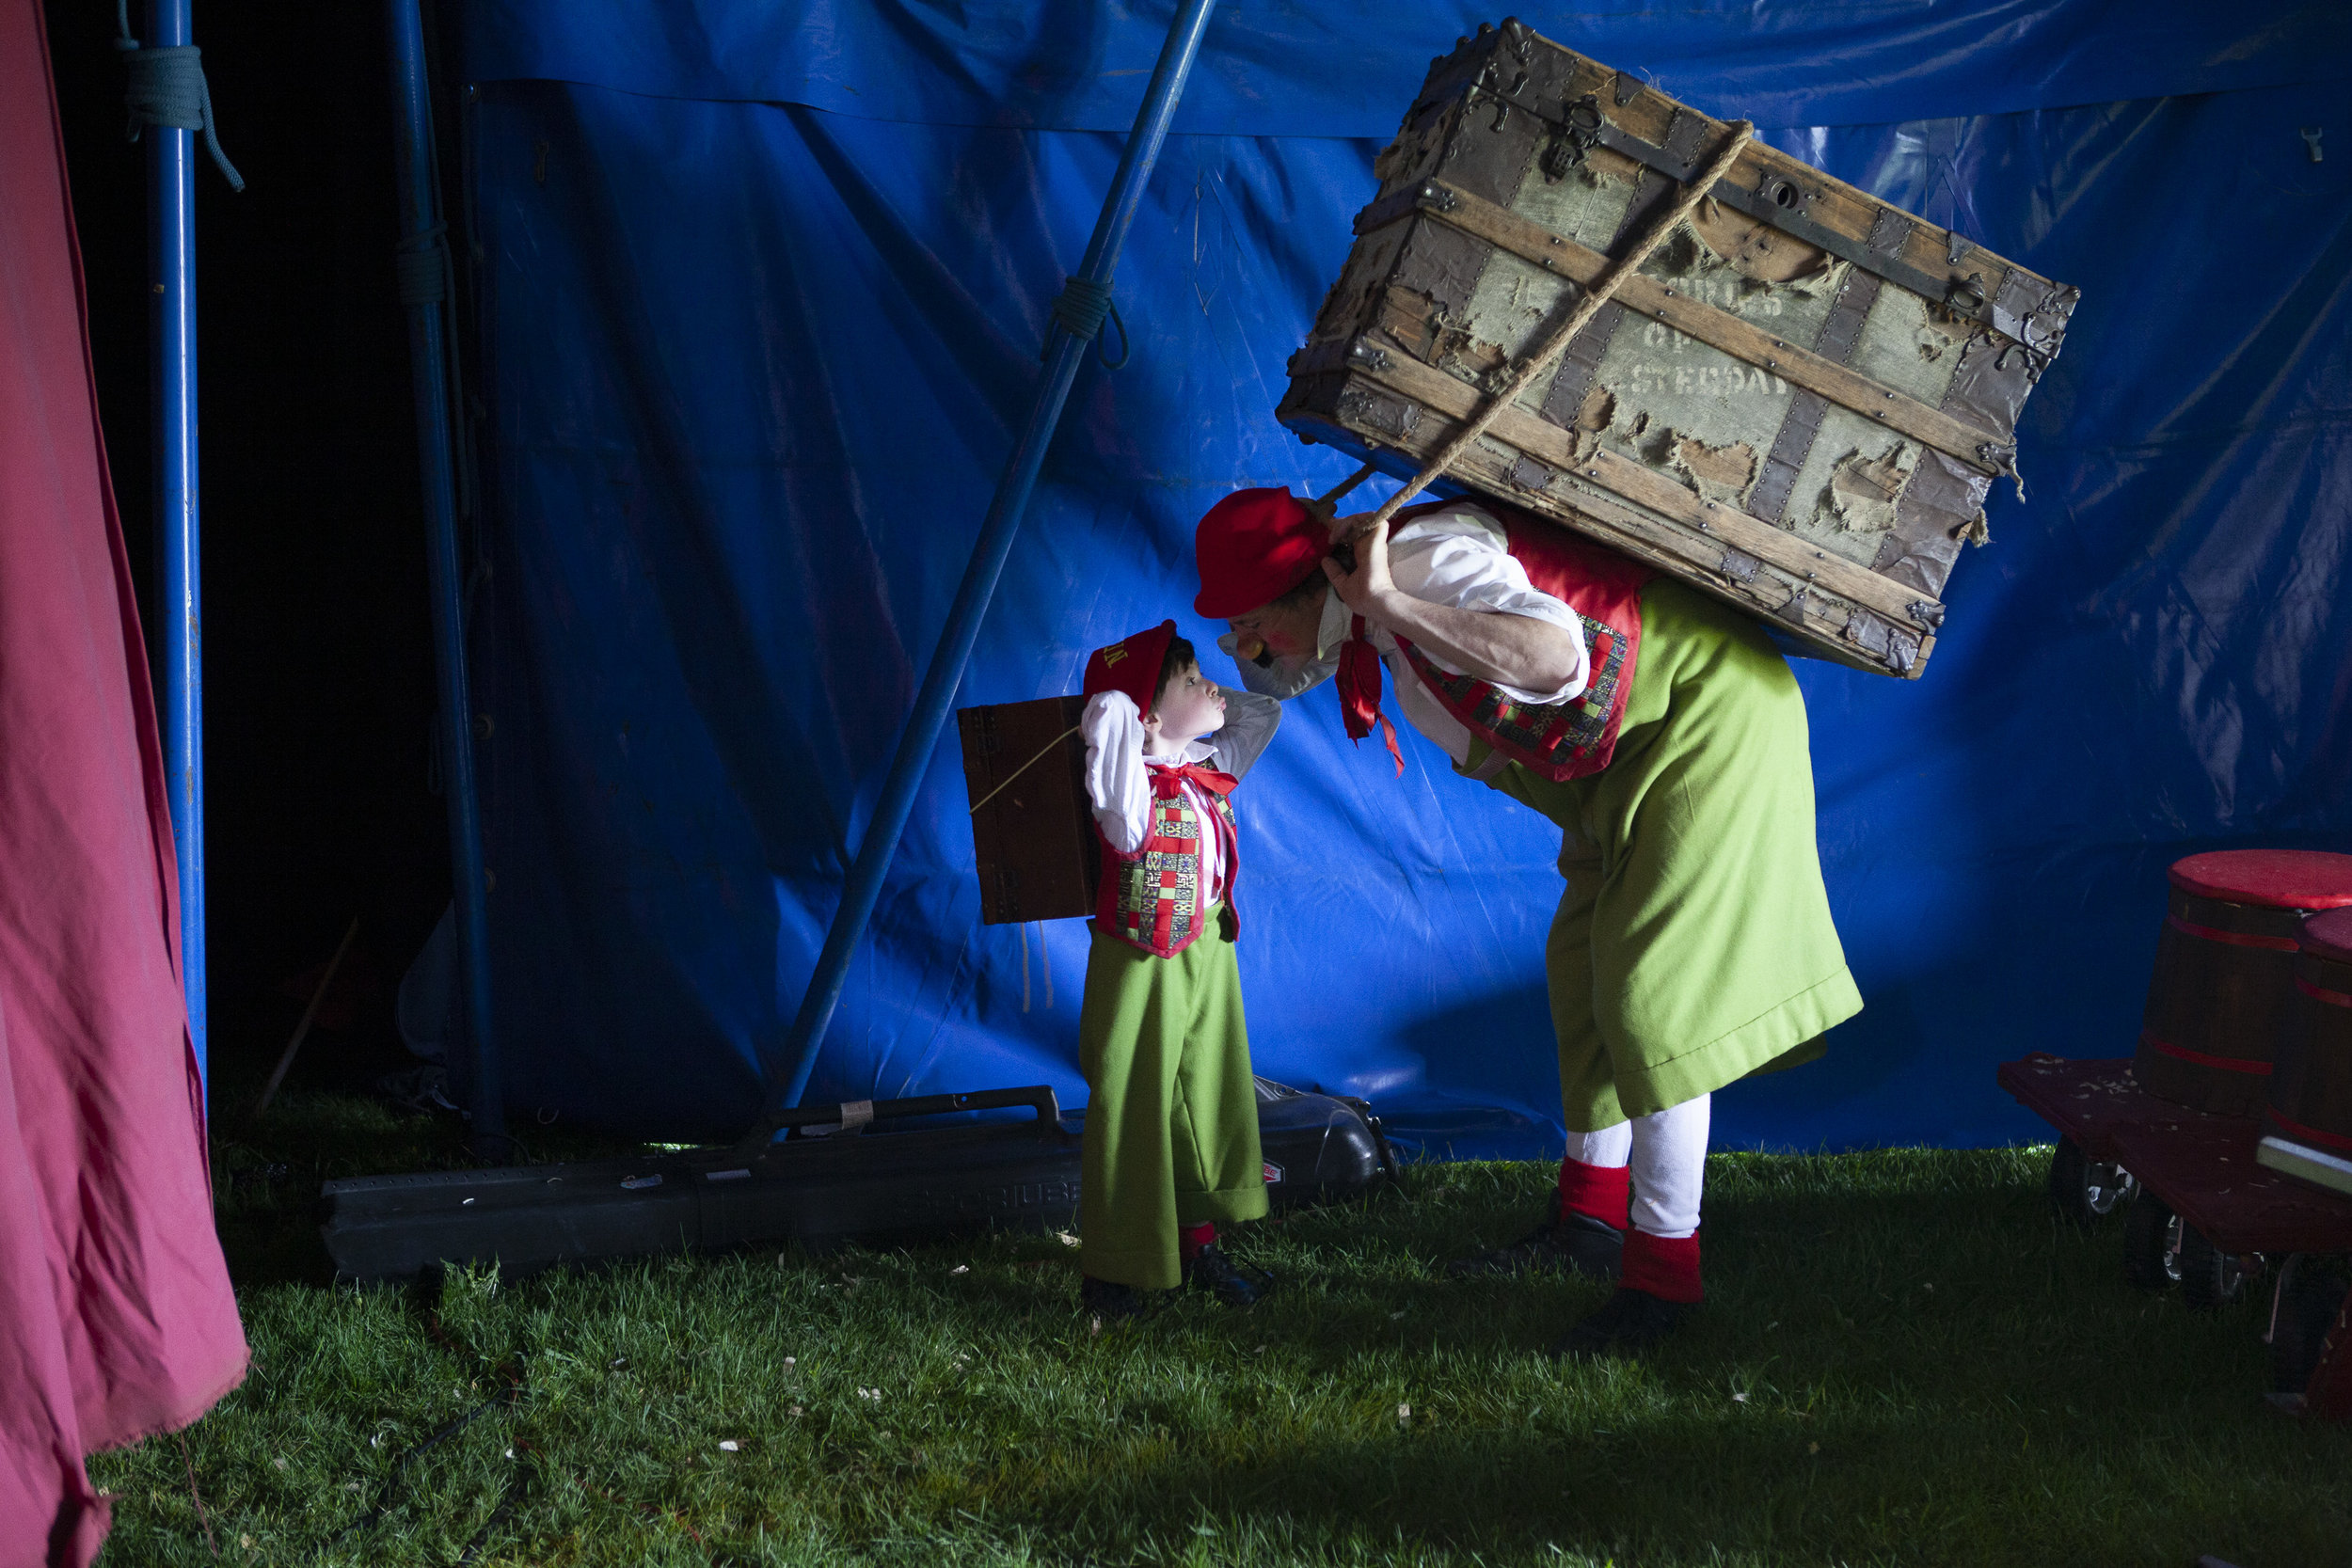 A backstage kiss for good luck transforms Julien and Giovanni into Ninito and Nino as they enter the ring to kick off the show. On their backs, matching steamer trunks—Julien's small and empty, Giovanni's full of implements for the show, all carefully packed into his father's trunk from Italy, tying together generations of Zoppé circus performers.